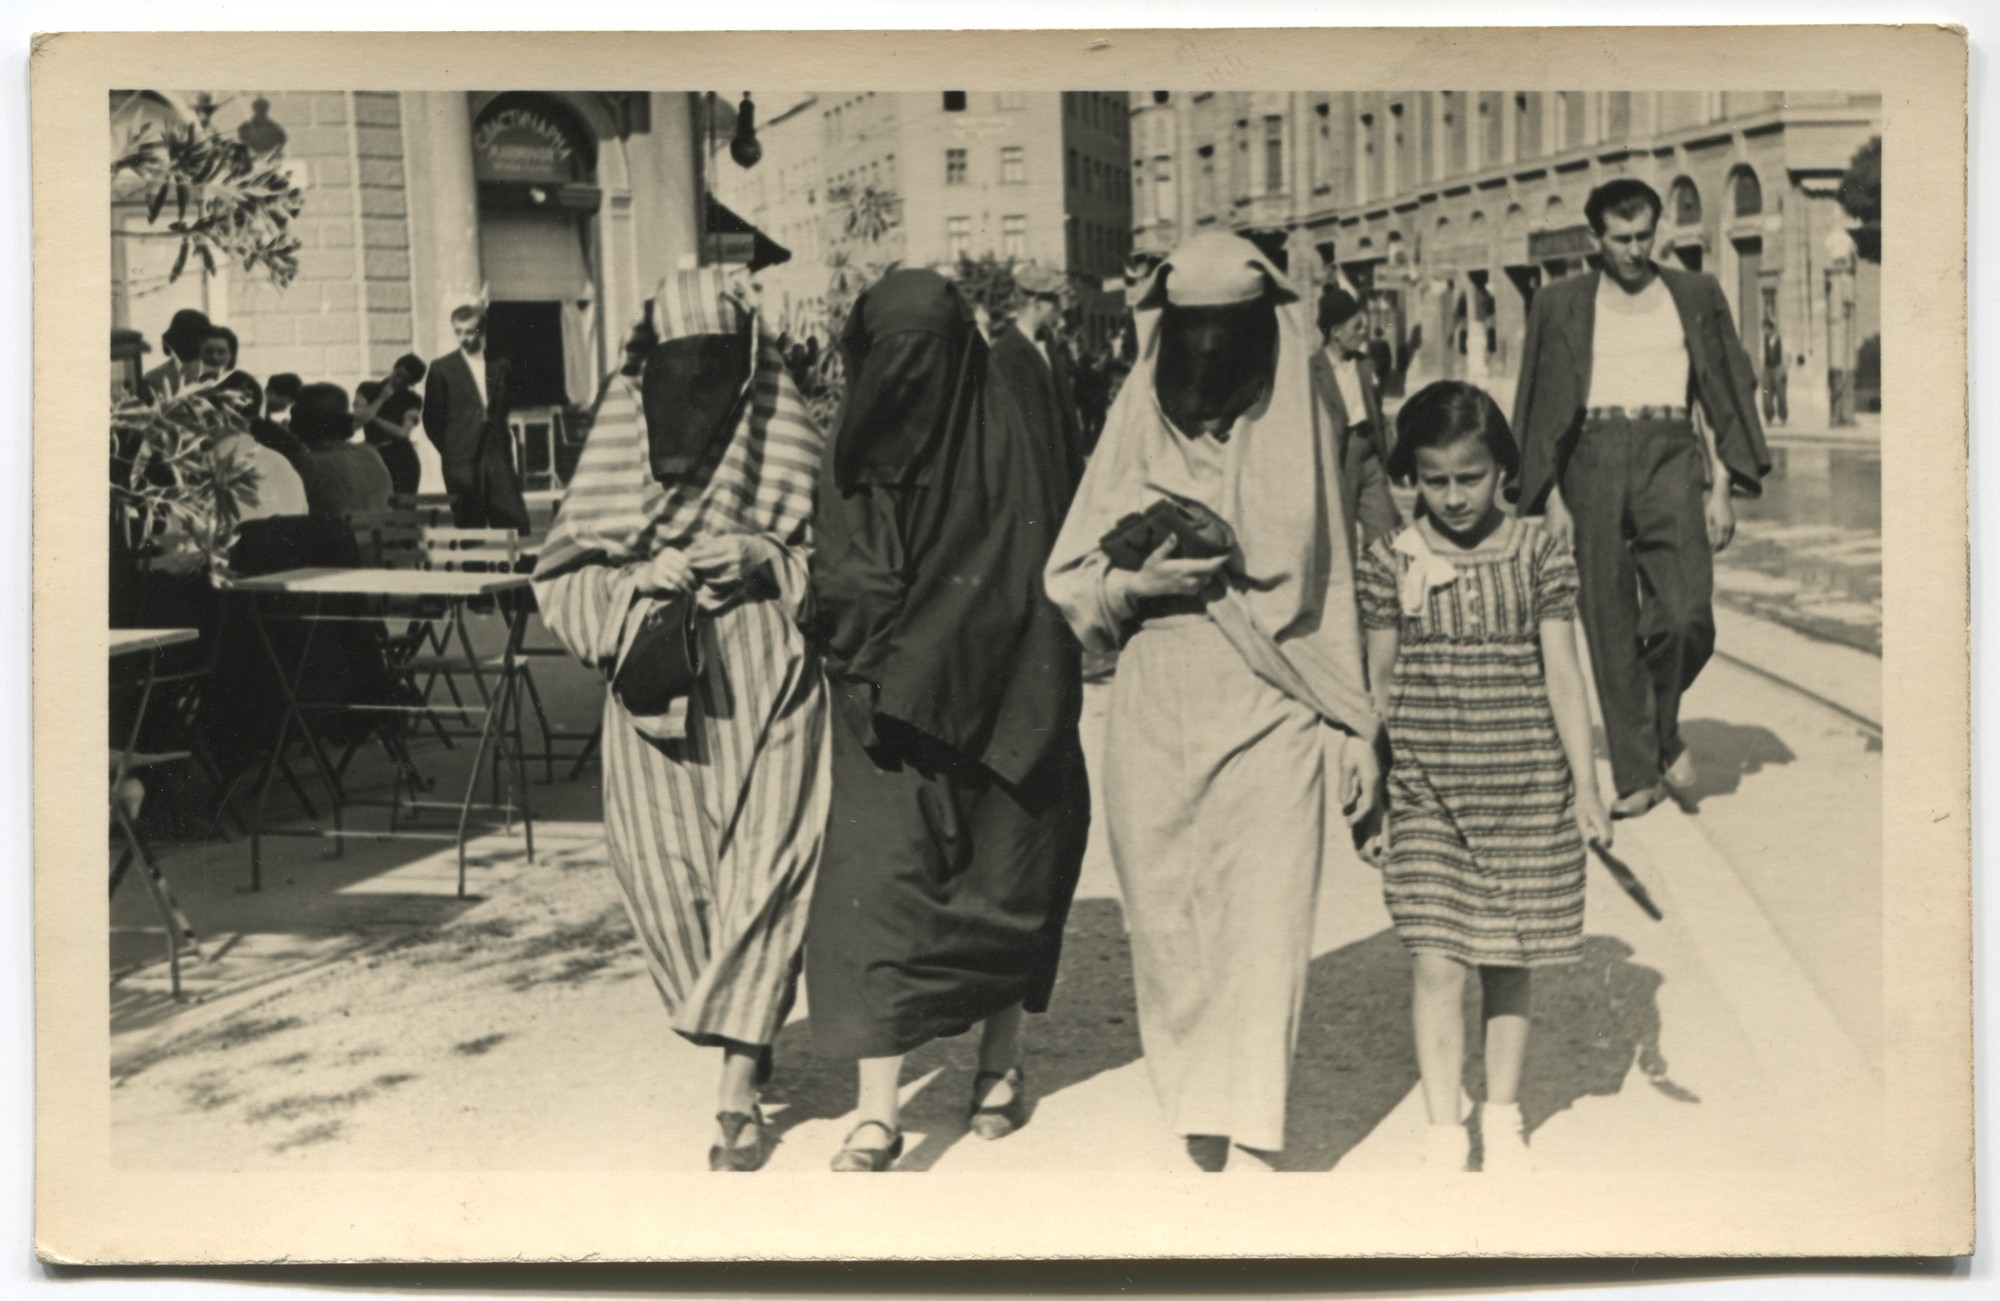 Muslim women's streetwear from the interwar period, © Museum of City of Sarajevo